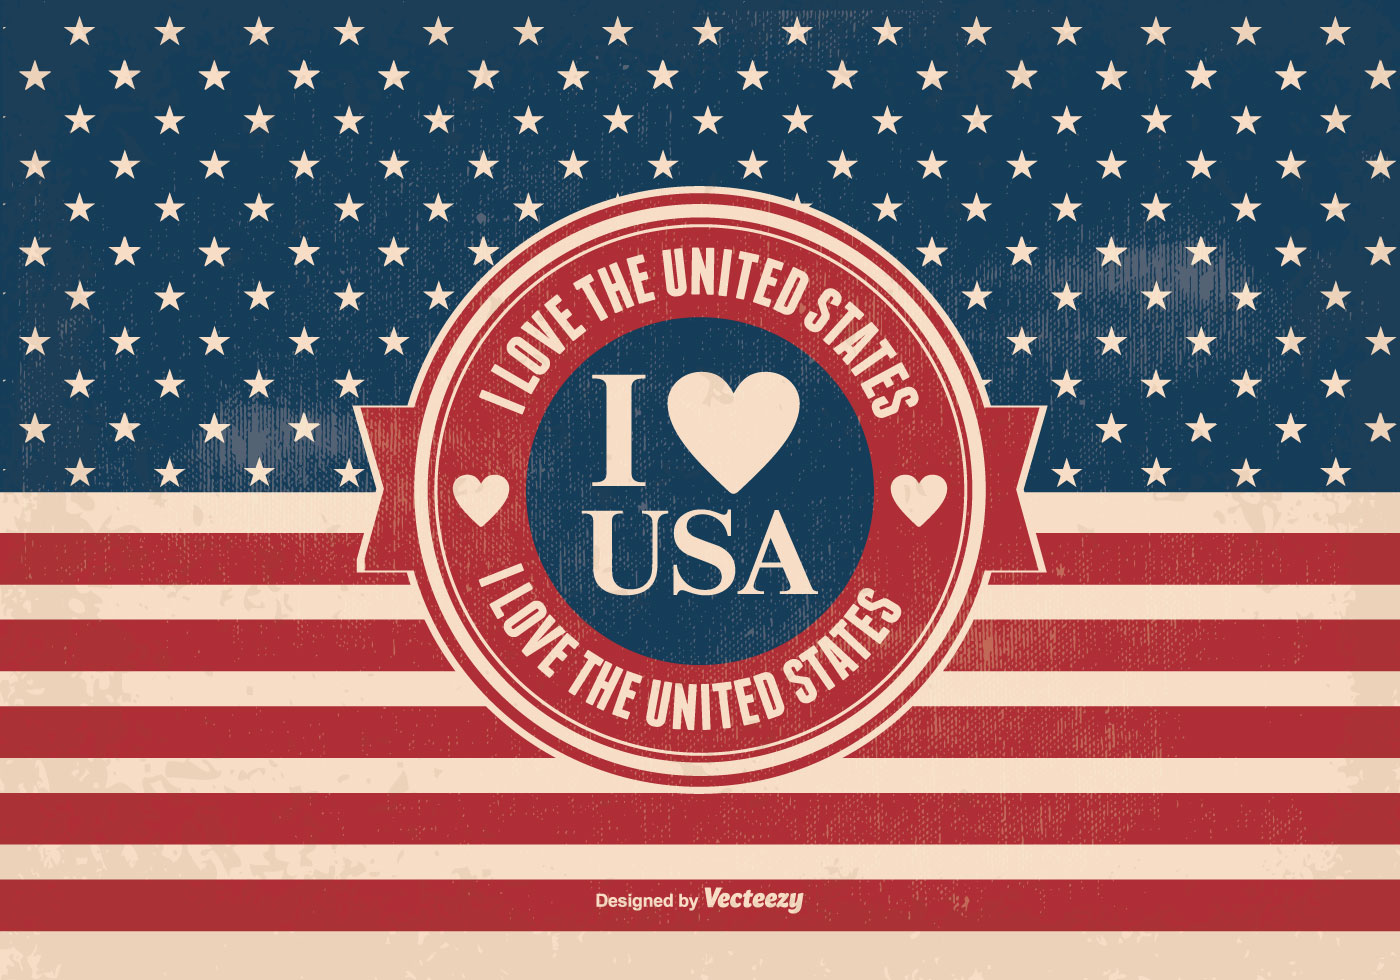 Star background vector download free vector art stock graphics - I Love The Usa Vintage Style Illustration Download Free